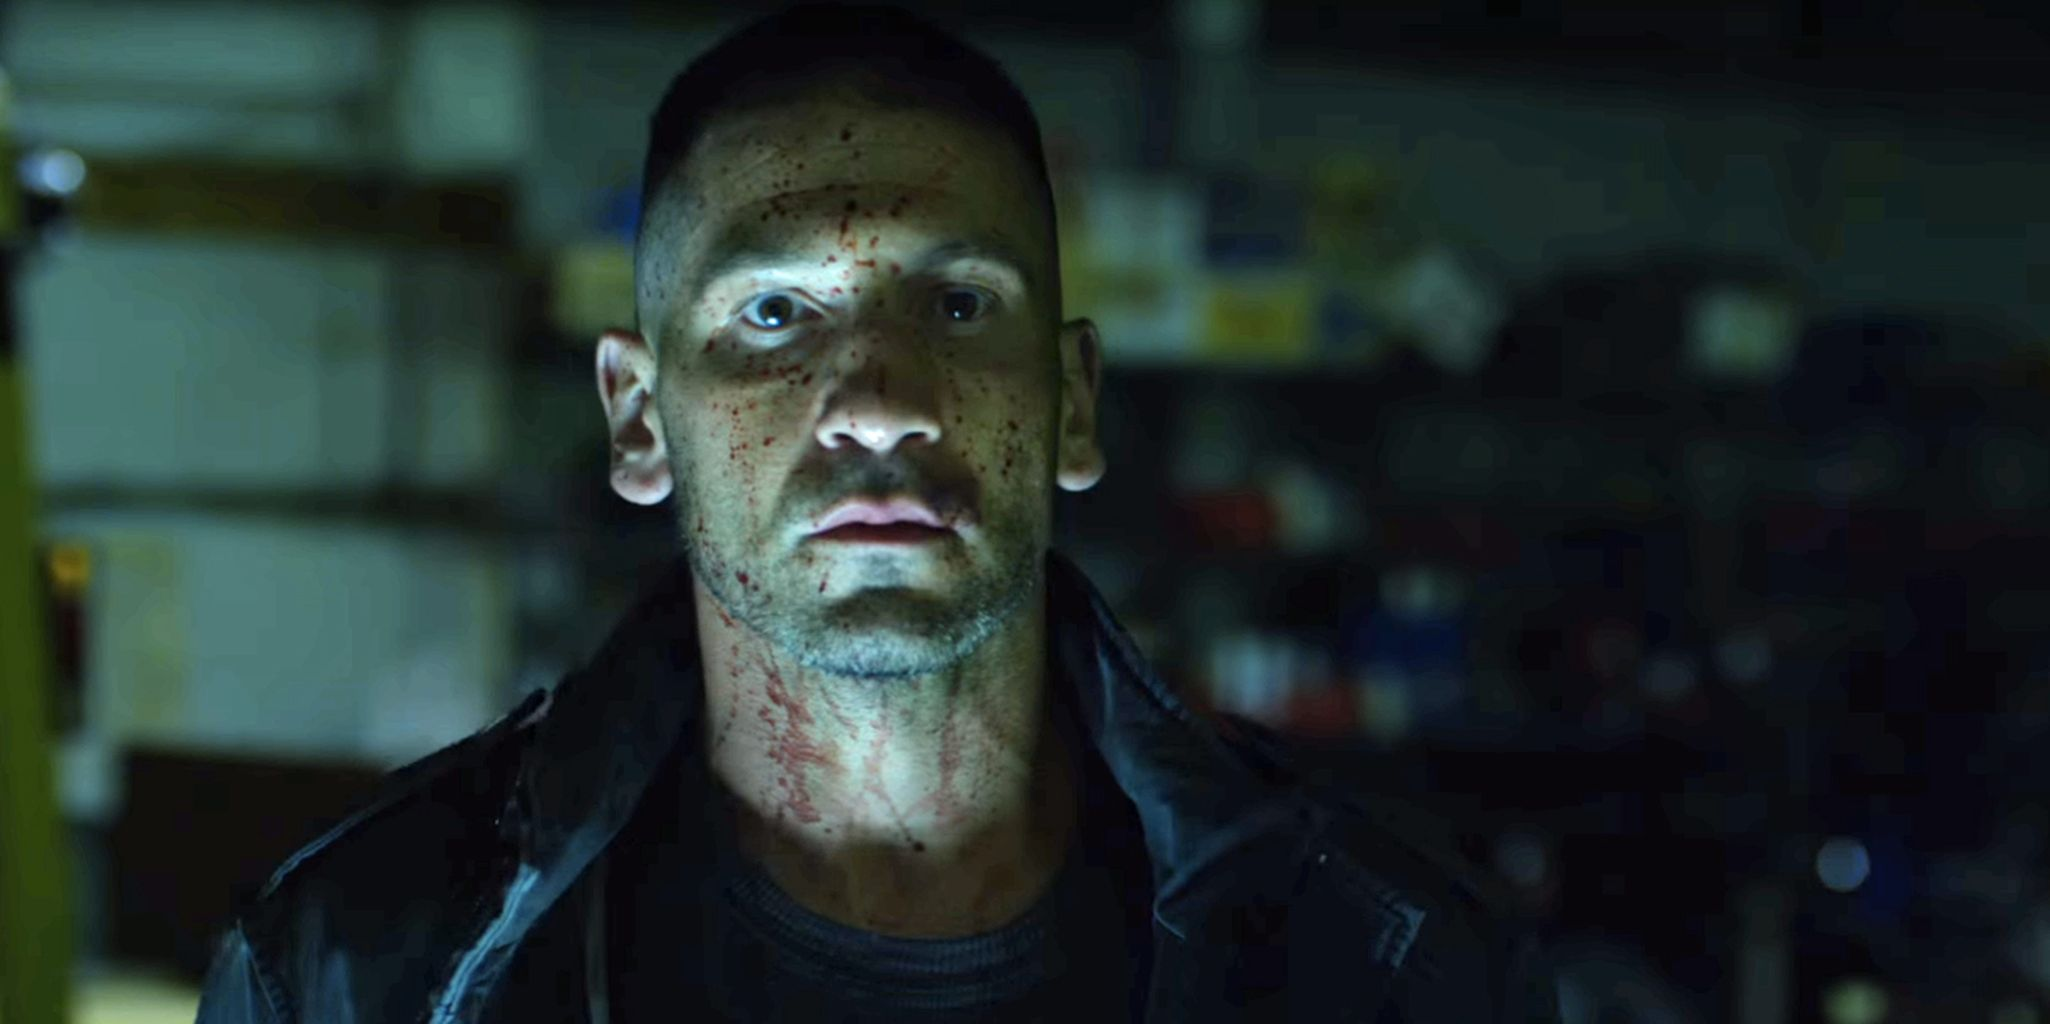 'PUNISHER' AND THE MYTHOS OF THE MODERN COWBOY -